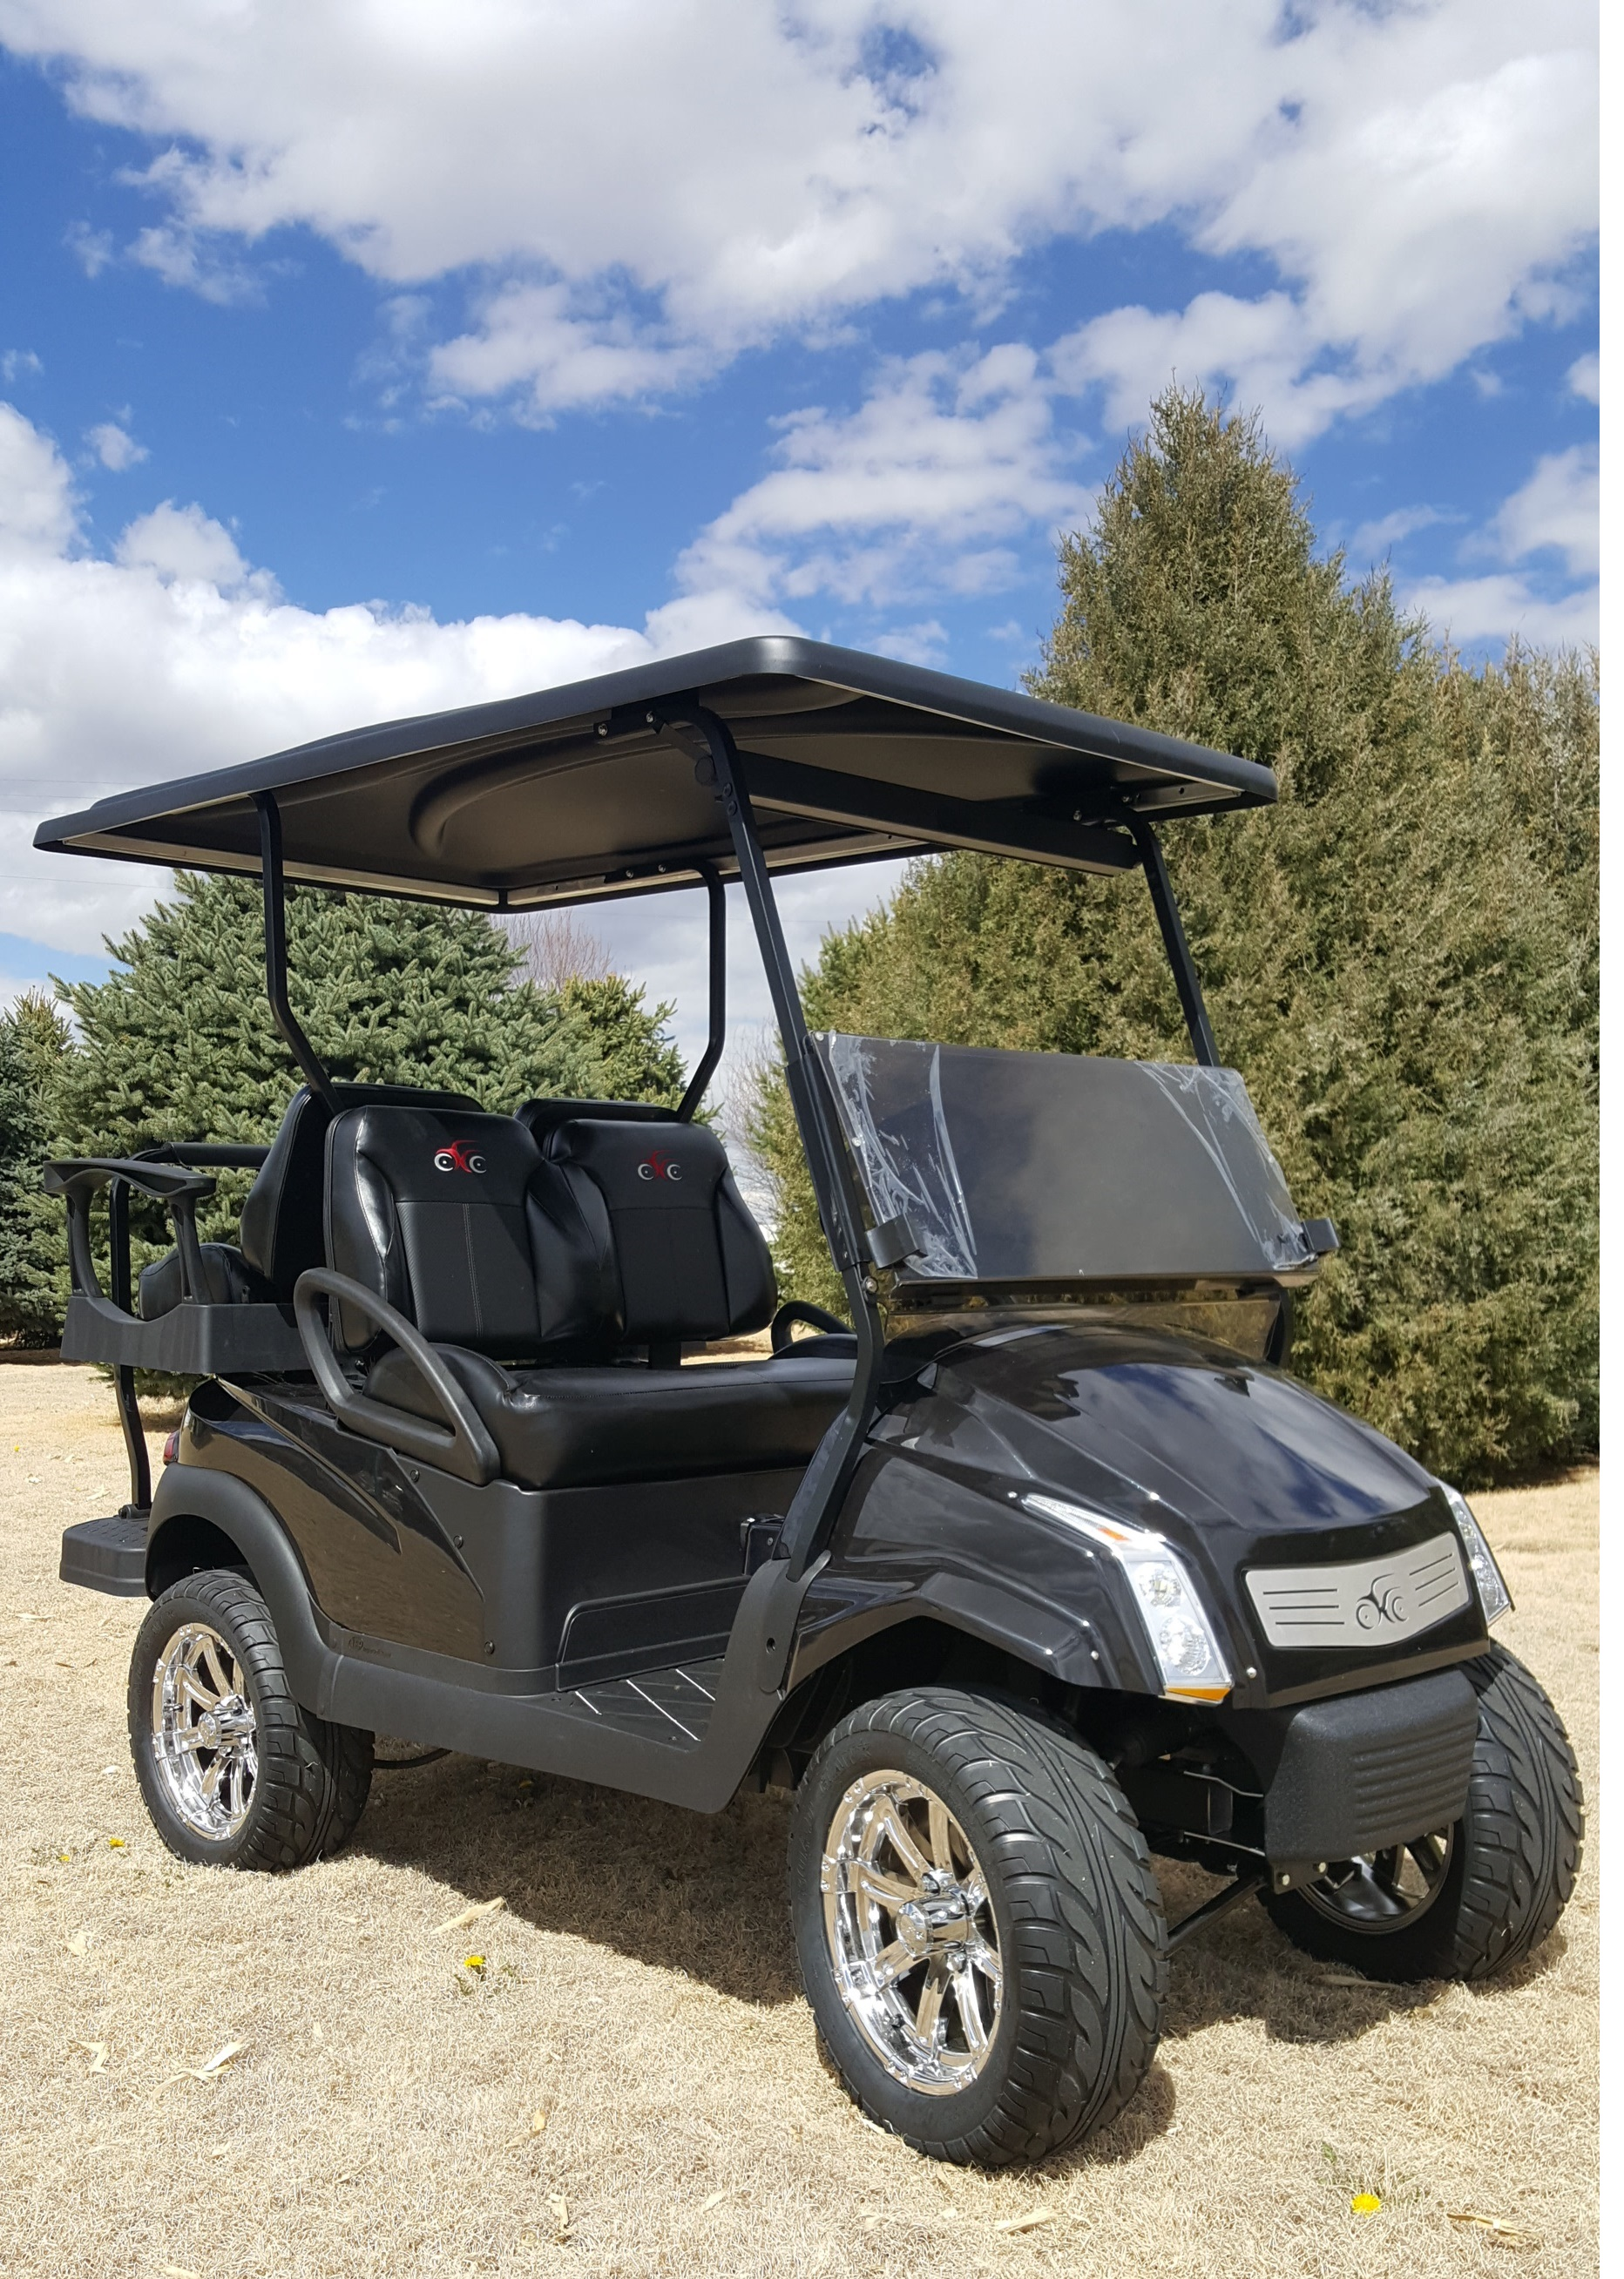 Custom Golf Carts In Colorado Kustom Blog Electric Club Car Troubleshooting Guide Design The Perfect Cart With Our Designer Seats Premium Wheels And Multiple Sound System Options Call Us Today To Get Your New